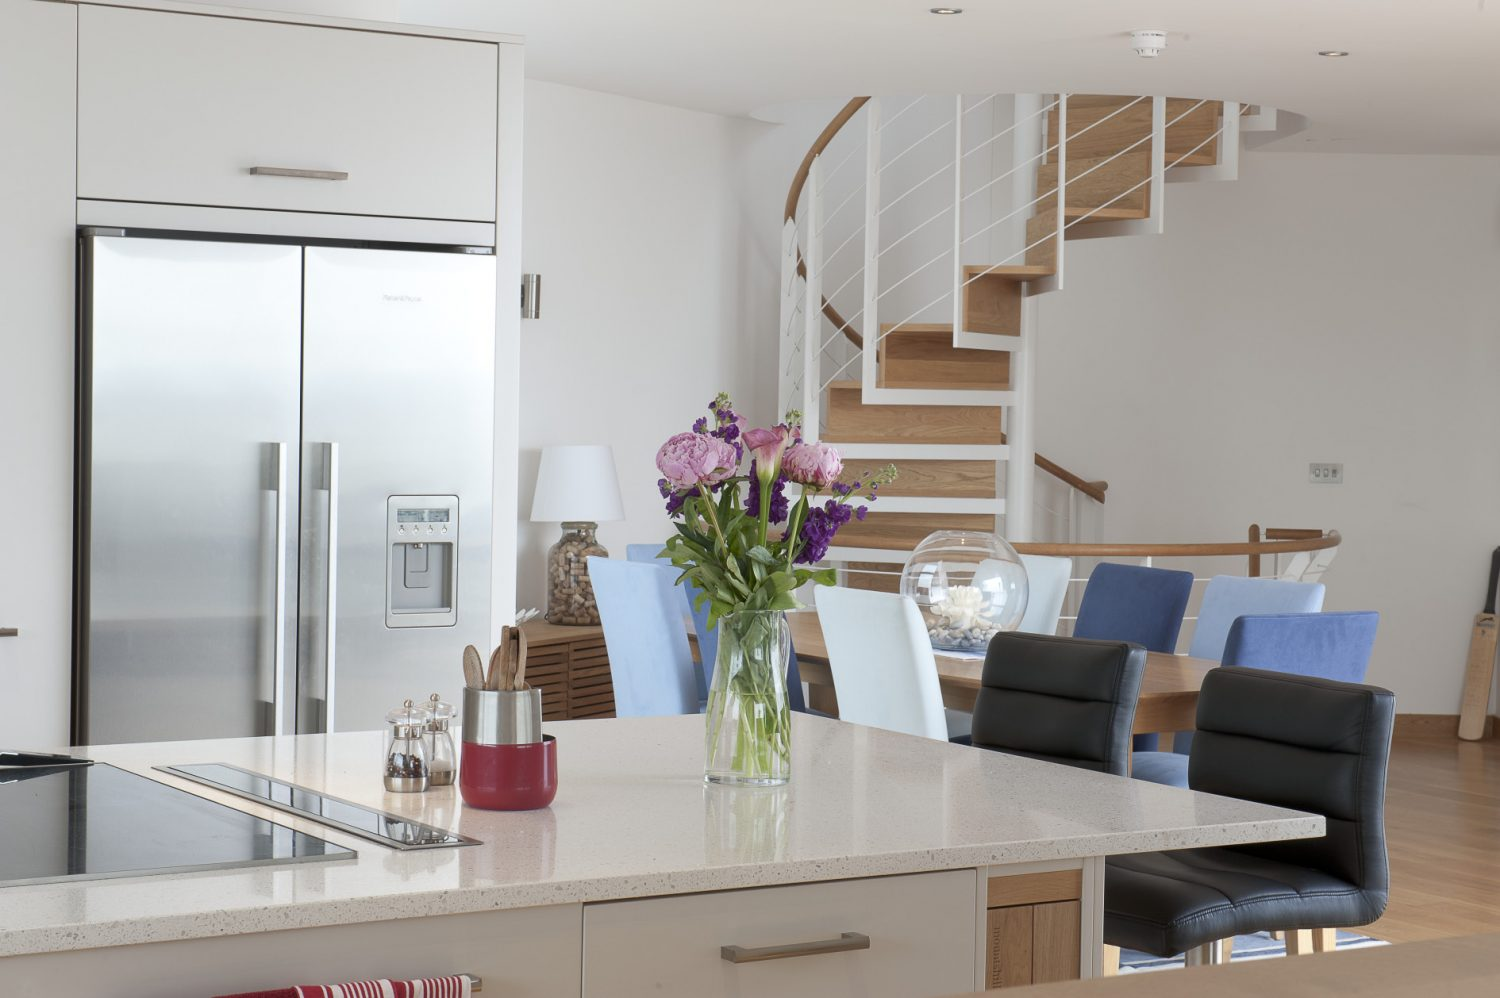 The kitchen, designed by Mounts Hill Woodcraft & Design, is sleekly efficient in appearance, with simple white cupboards and stainless steel appliances